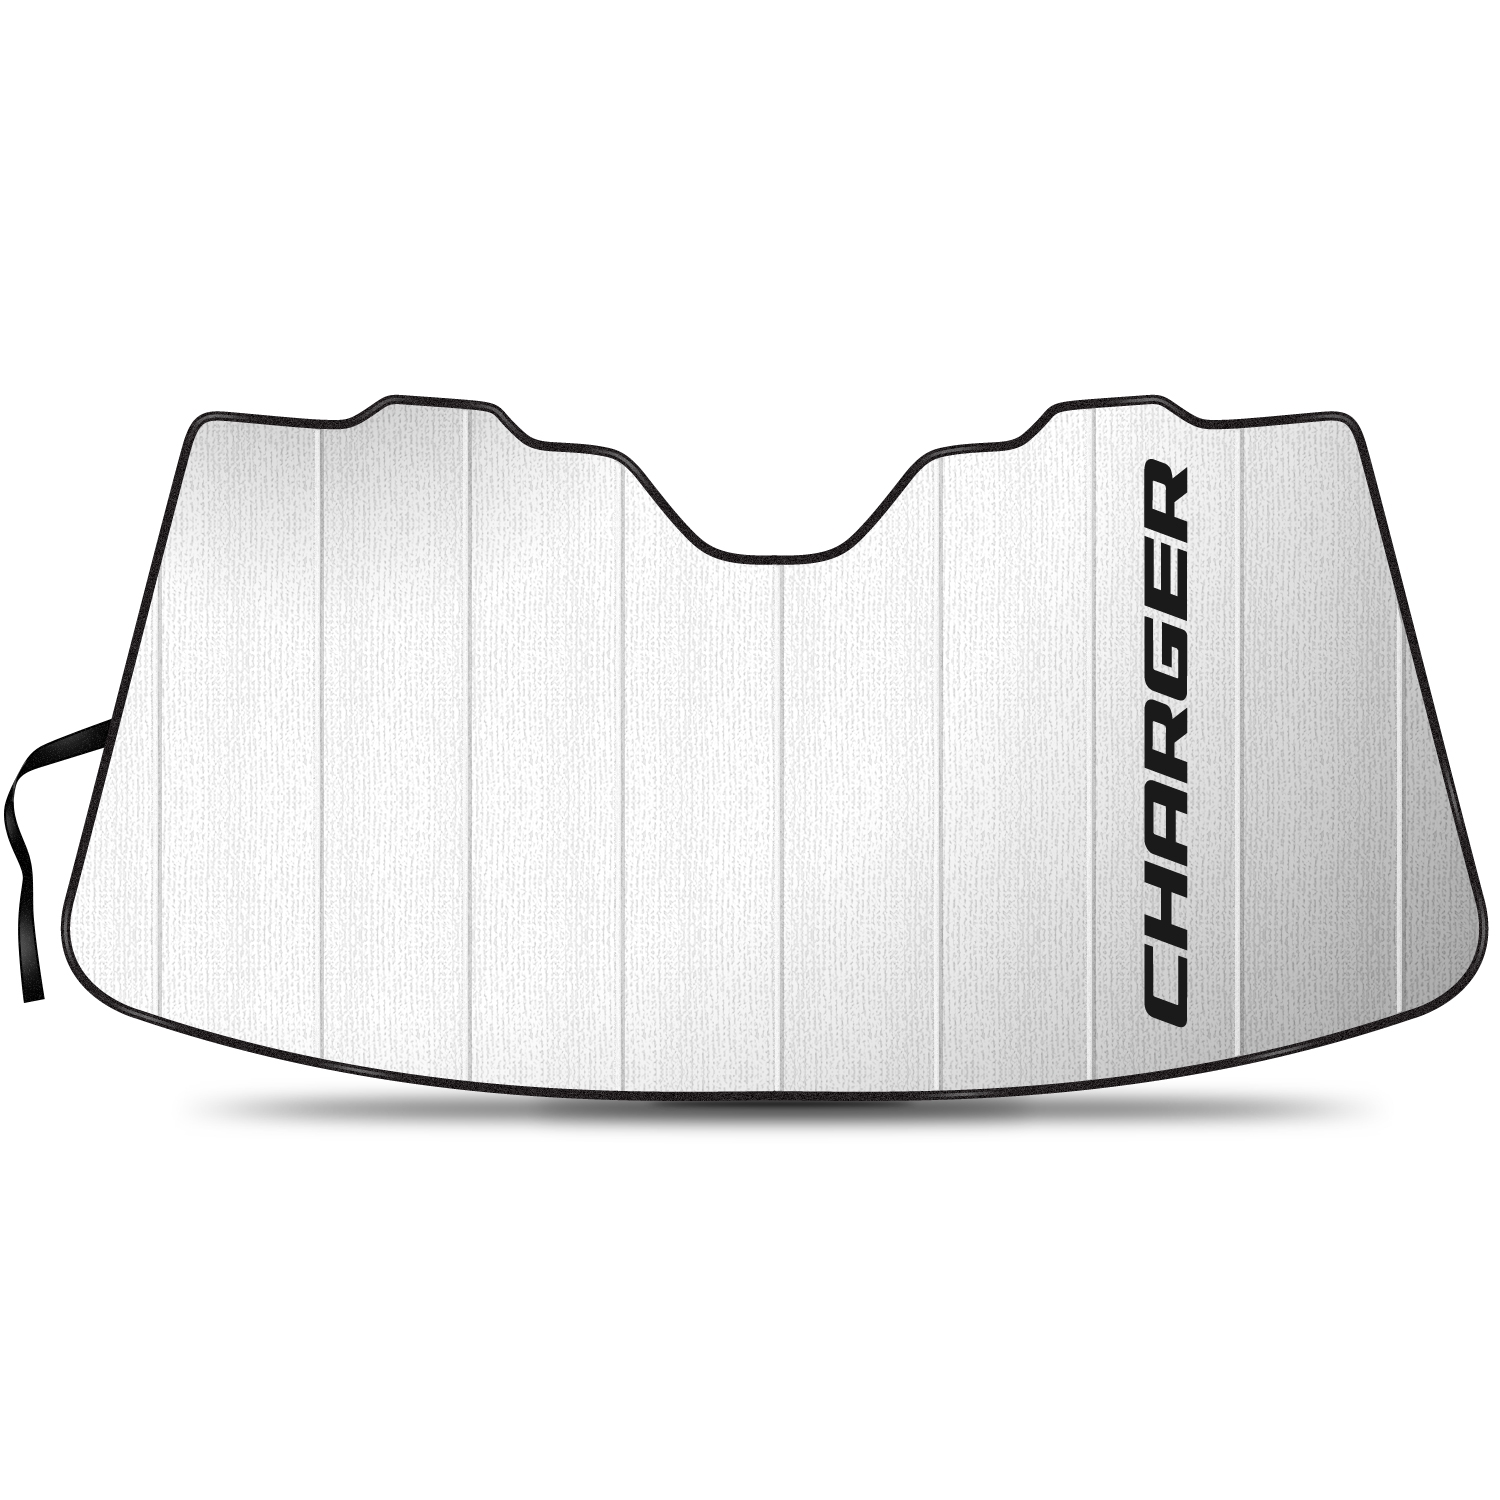 "Dodge Charger 55-1/2""x 27"" Stand Up Universal Fit Auto Windshield Sun Shade"